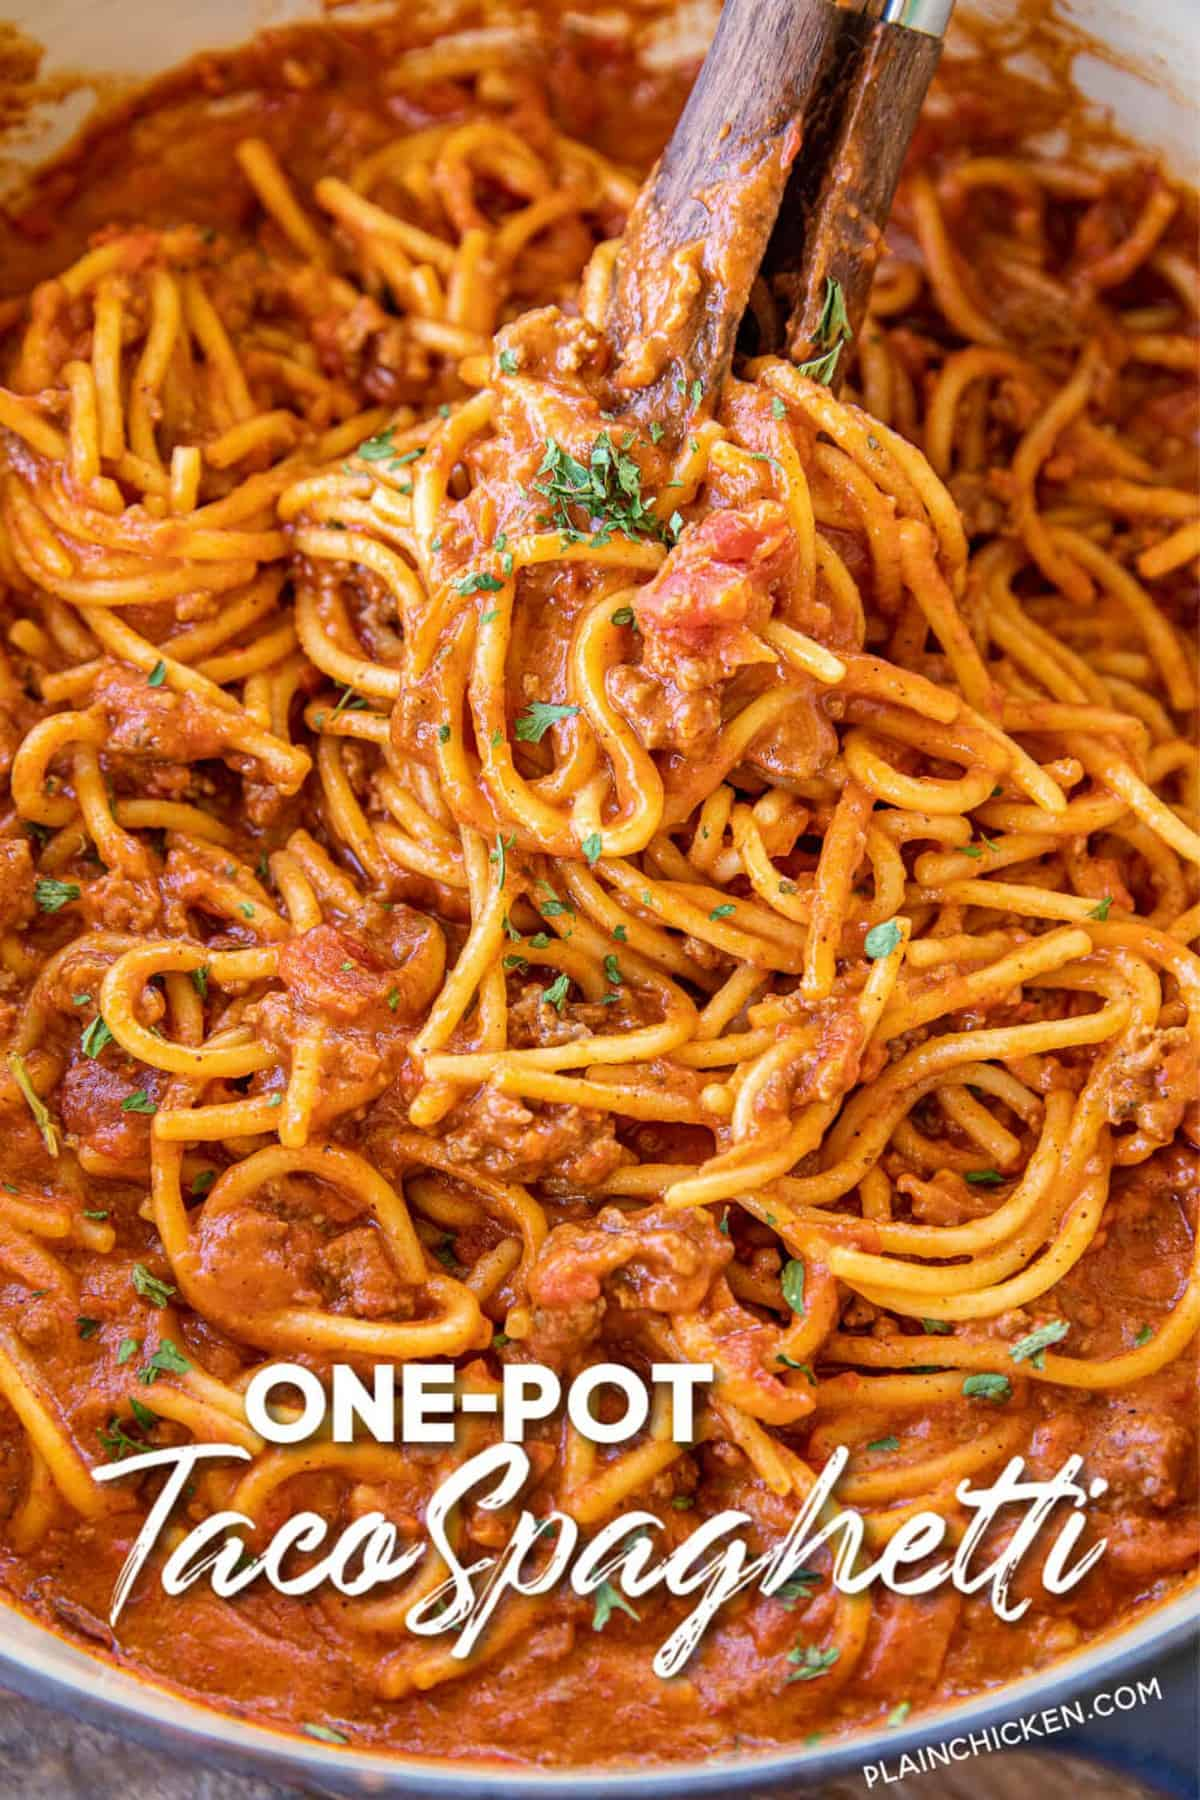 One Pot Taco Spaghetti Plain Chicken